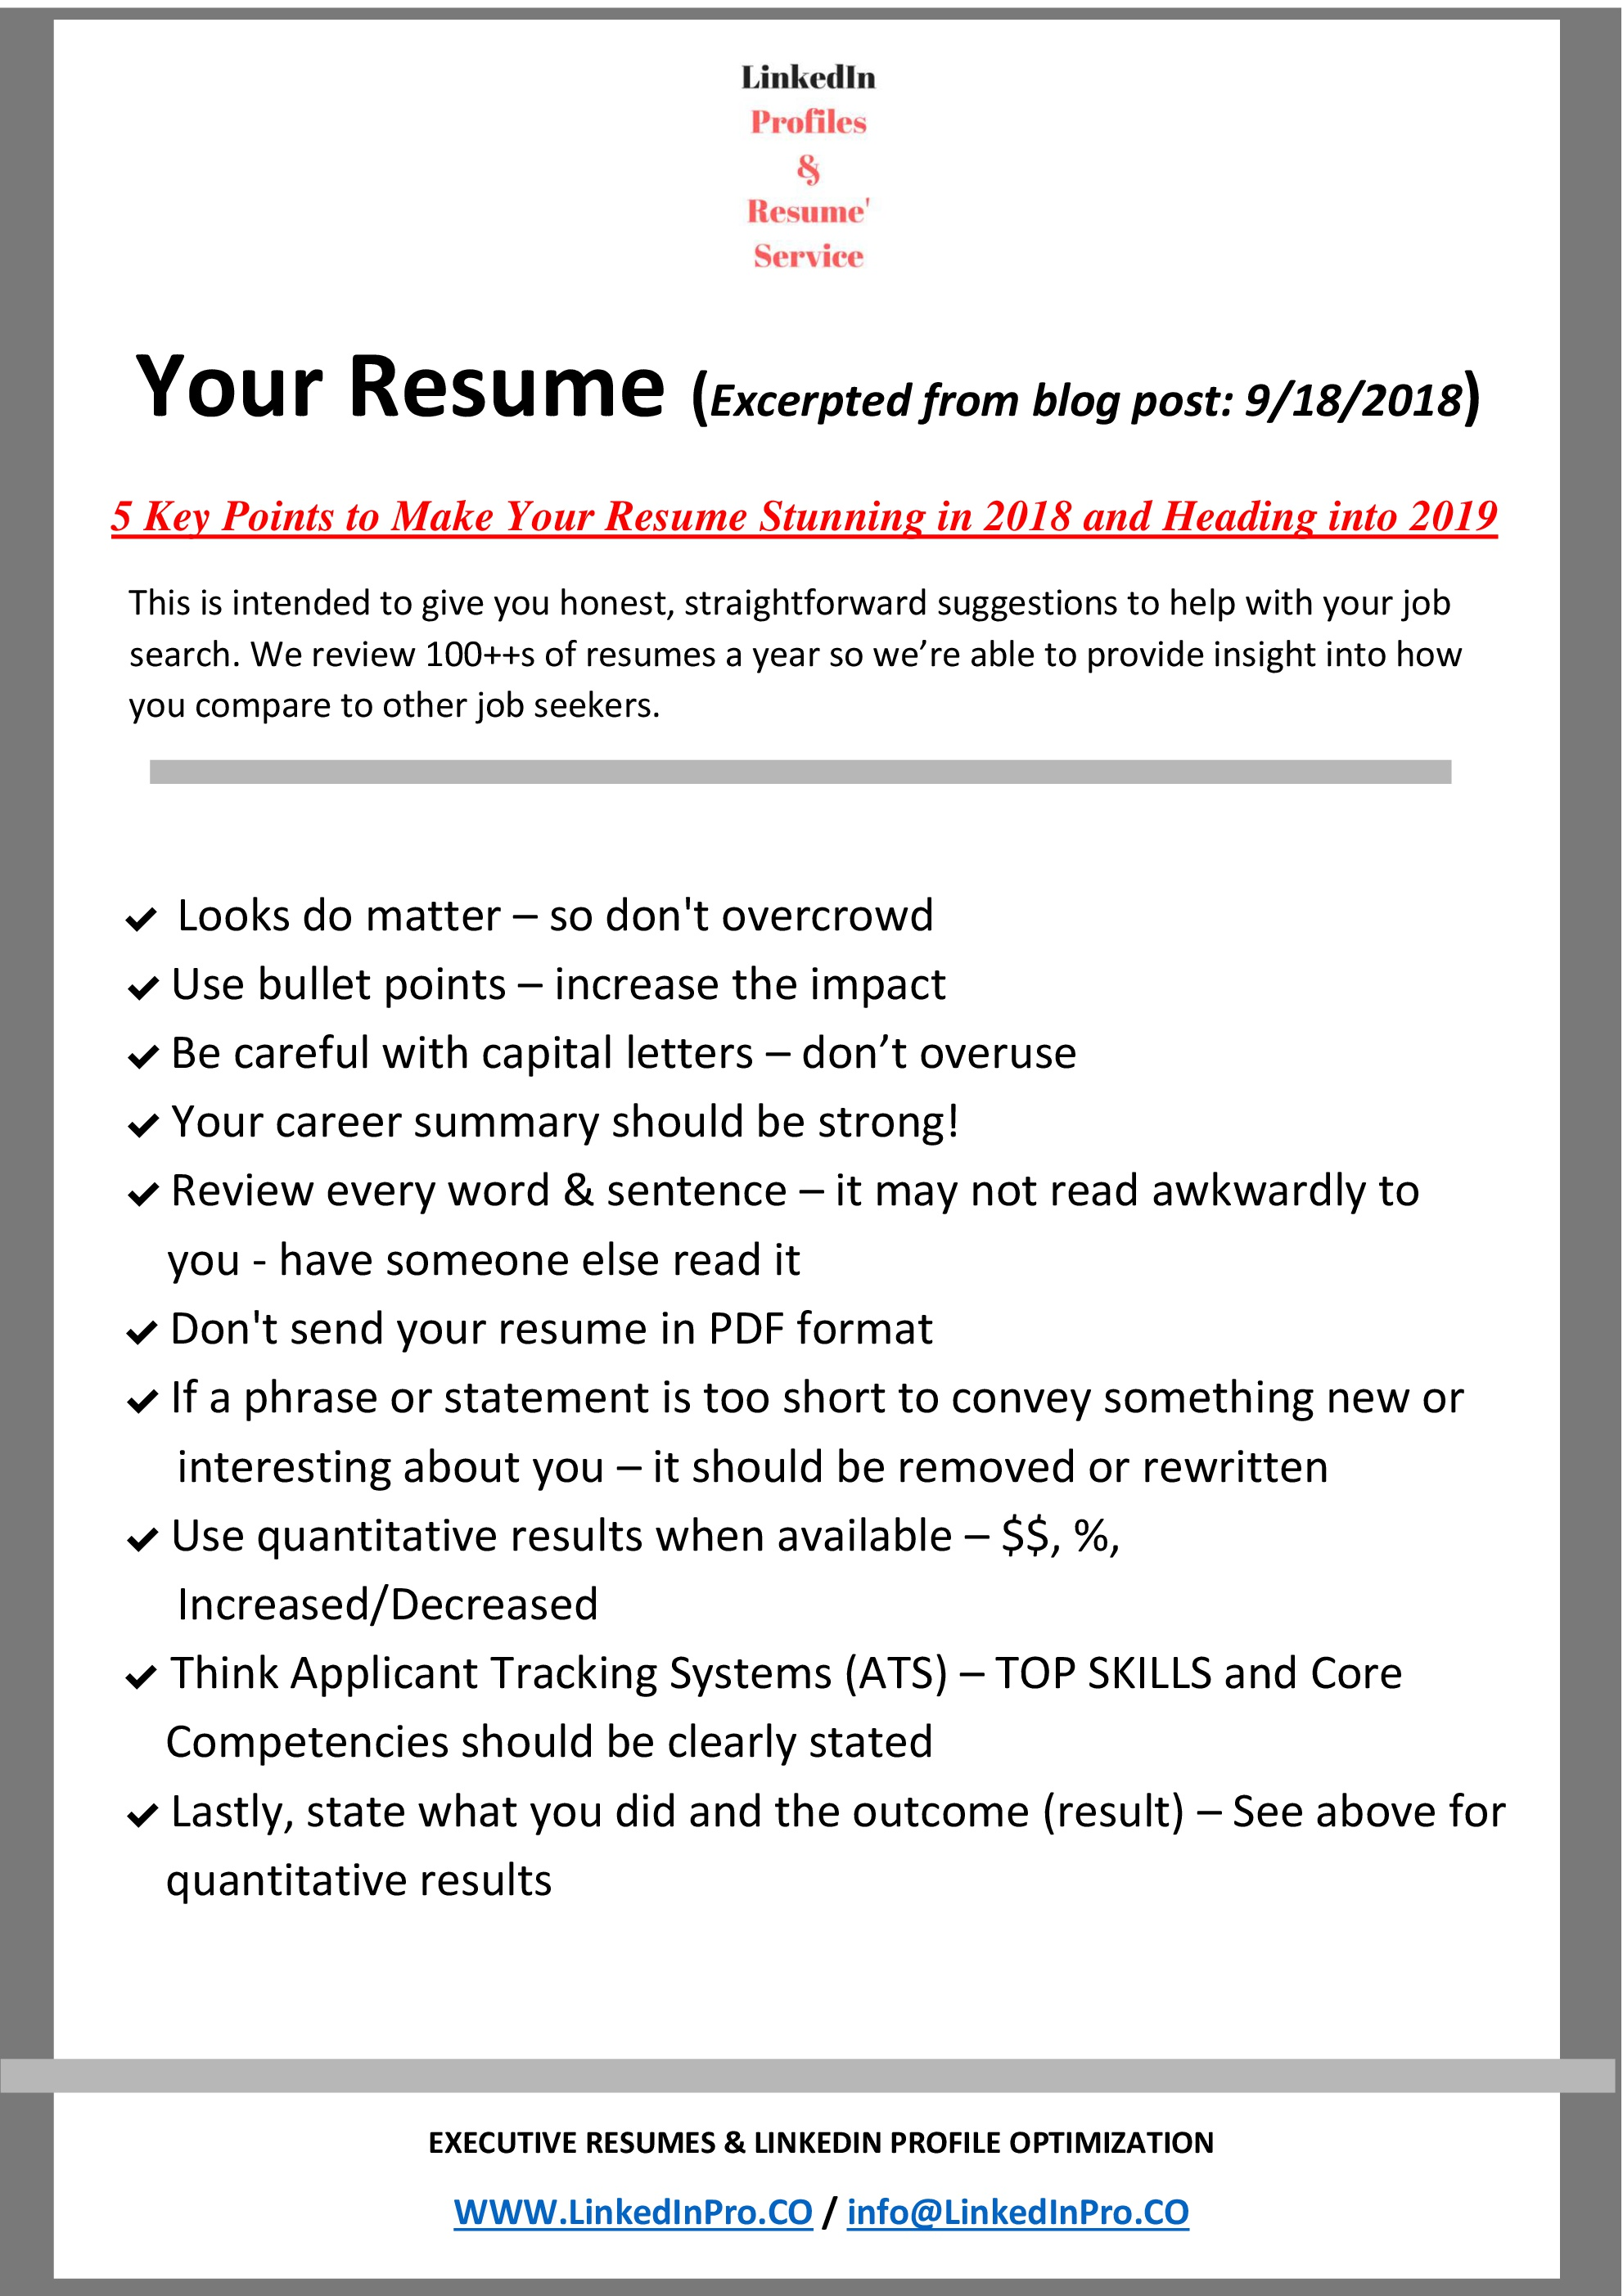 5 Key Points To Make Your Resume Stunning In 2018 And